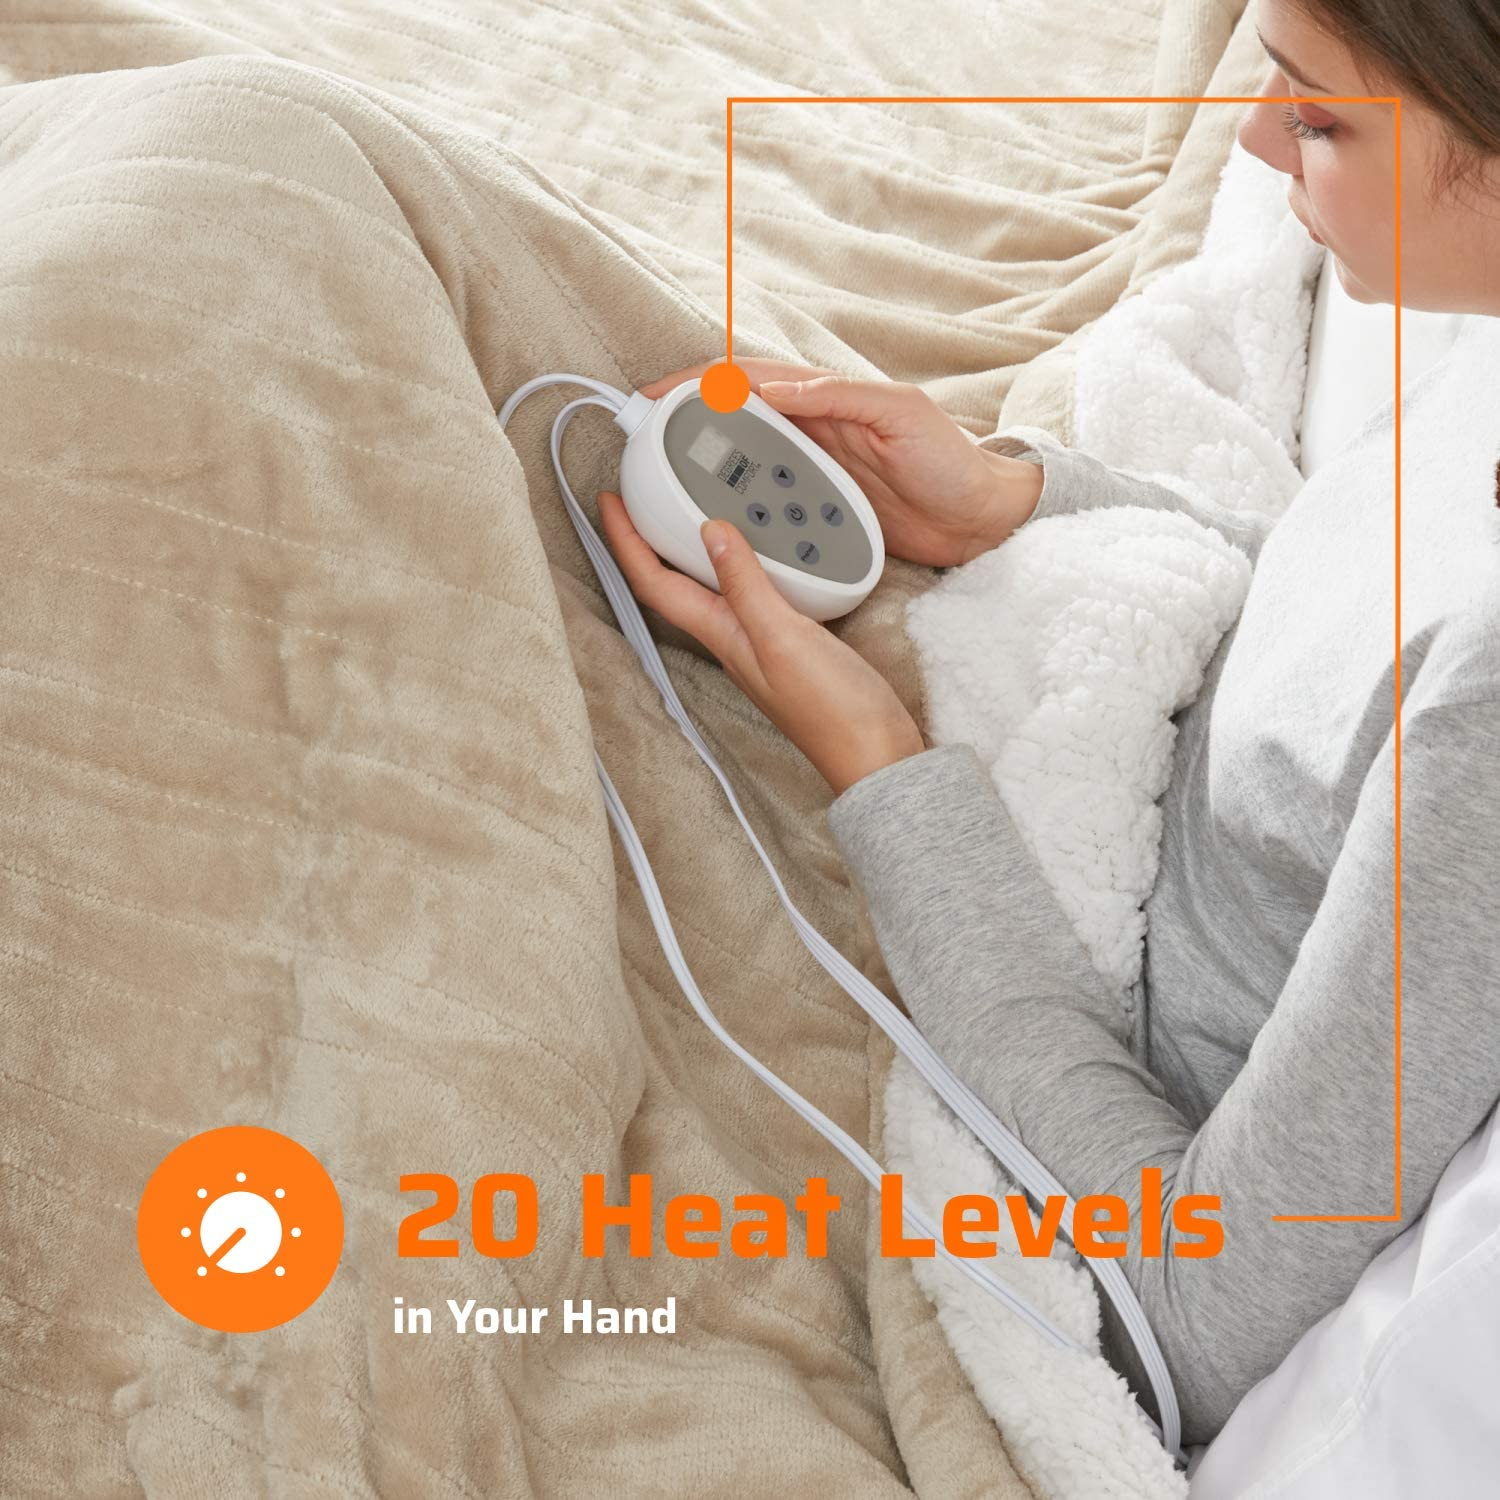 1-10 Hour Auto Shut Off |Washable Full Size Bed Electric Blankets with 20 Heat Settings Controller Degrees of Comfort Sherpa Plush Heated Blanket 80 X 84 Grey